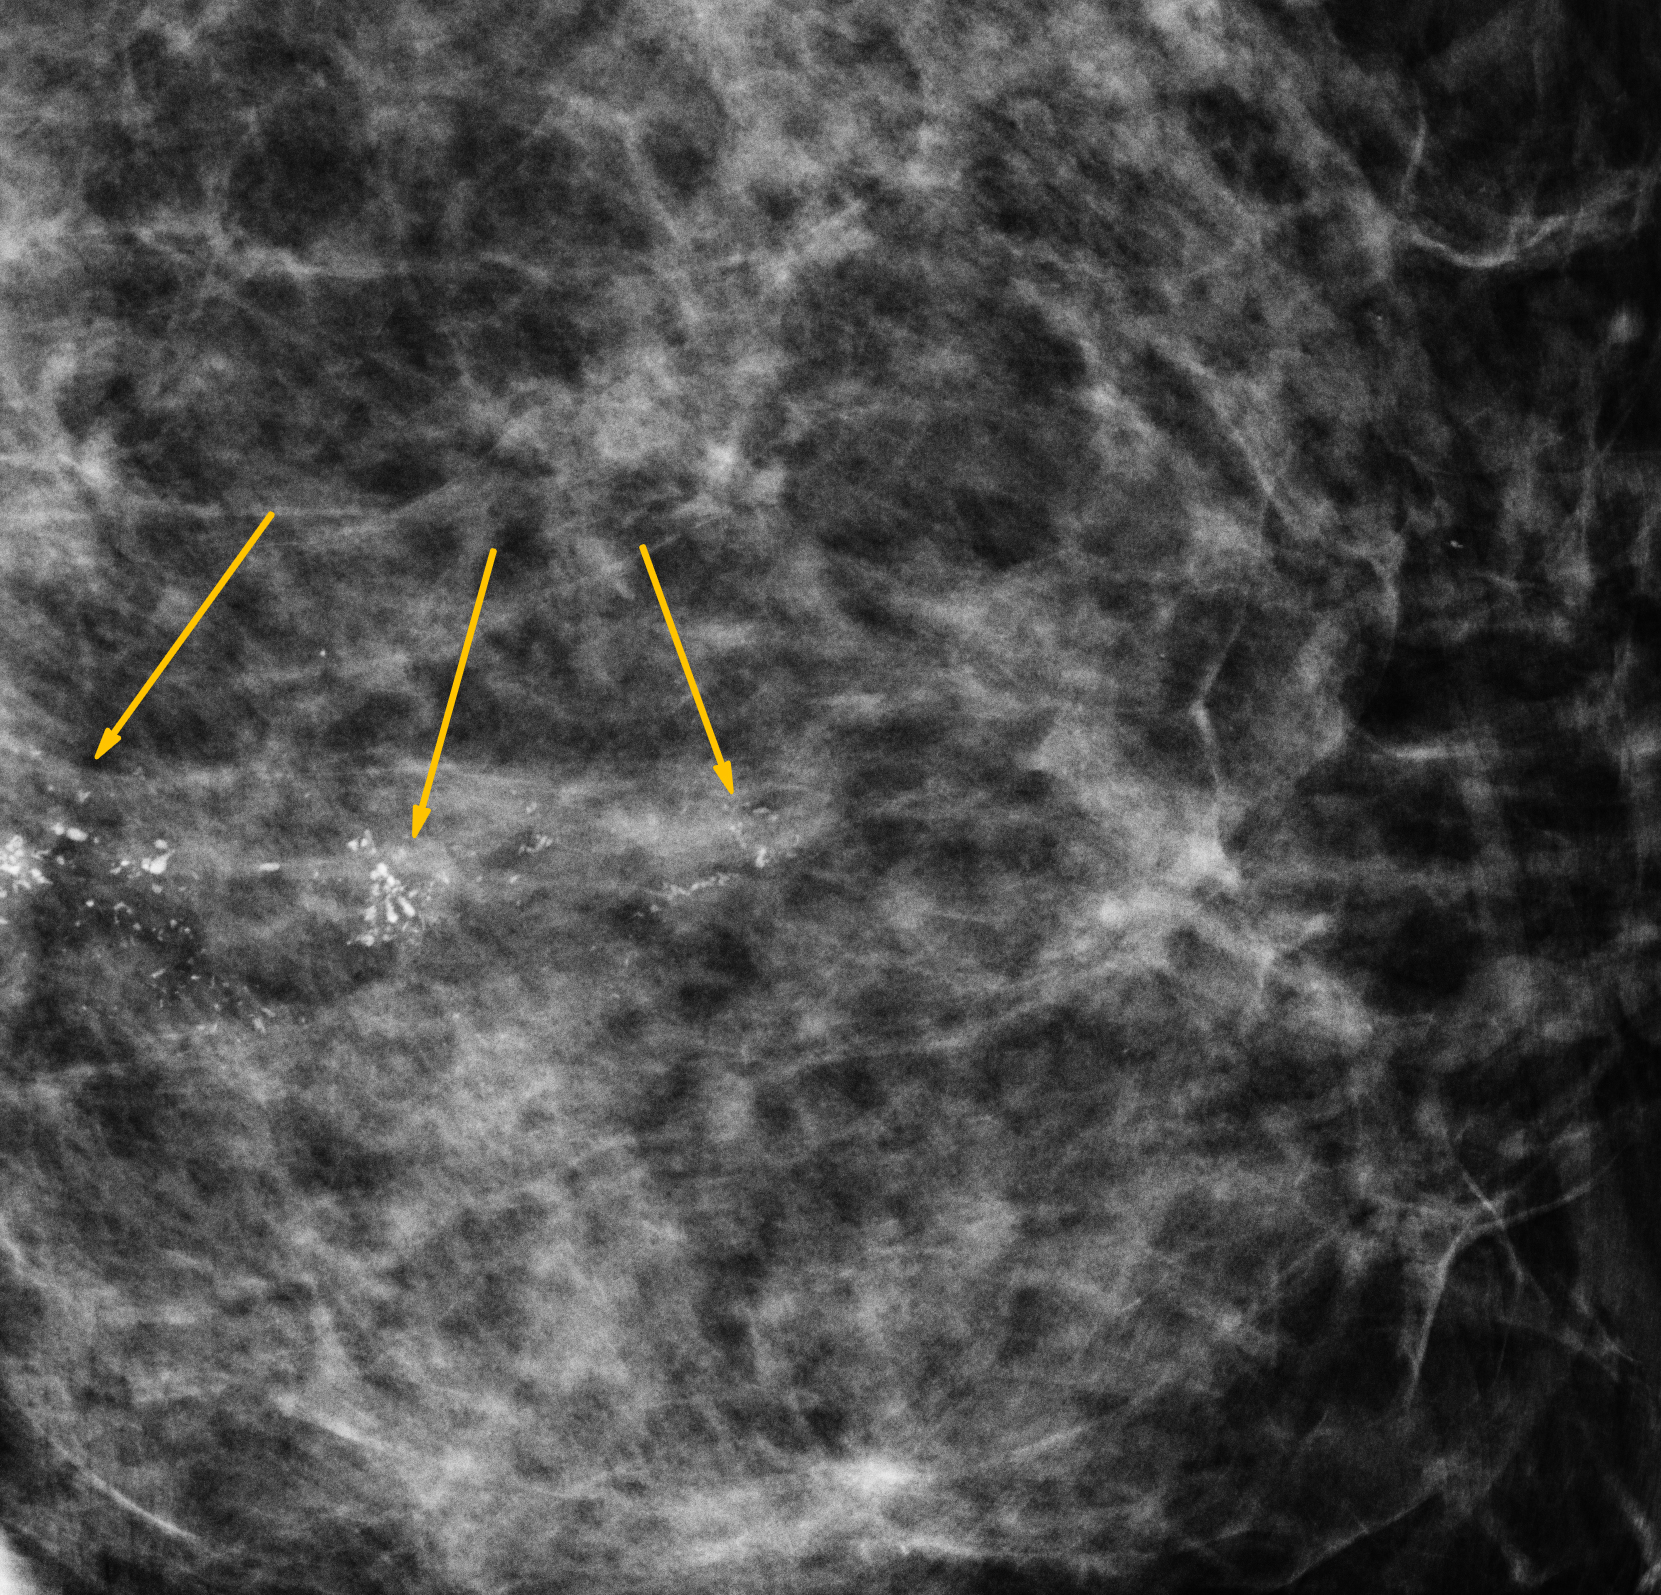 Image Processing Techniques Detect Cancer Earlier